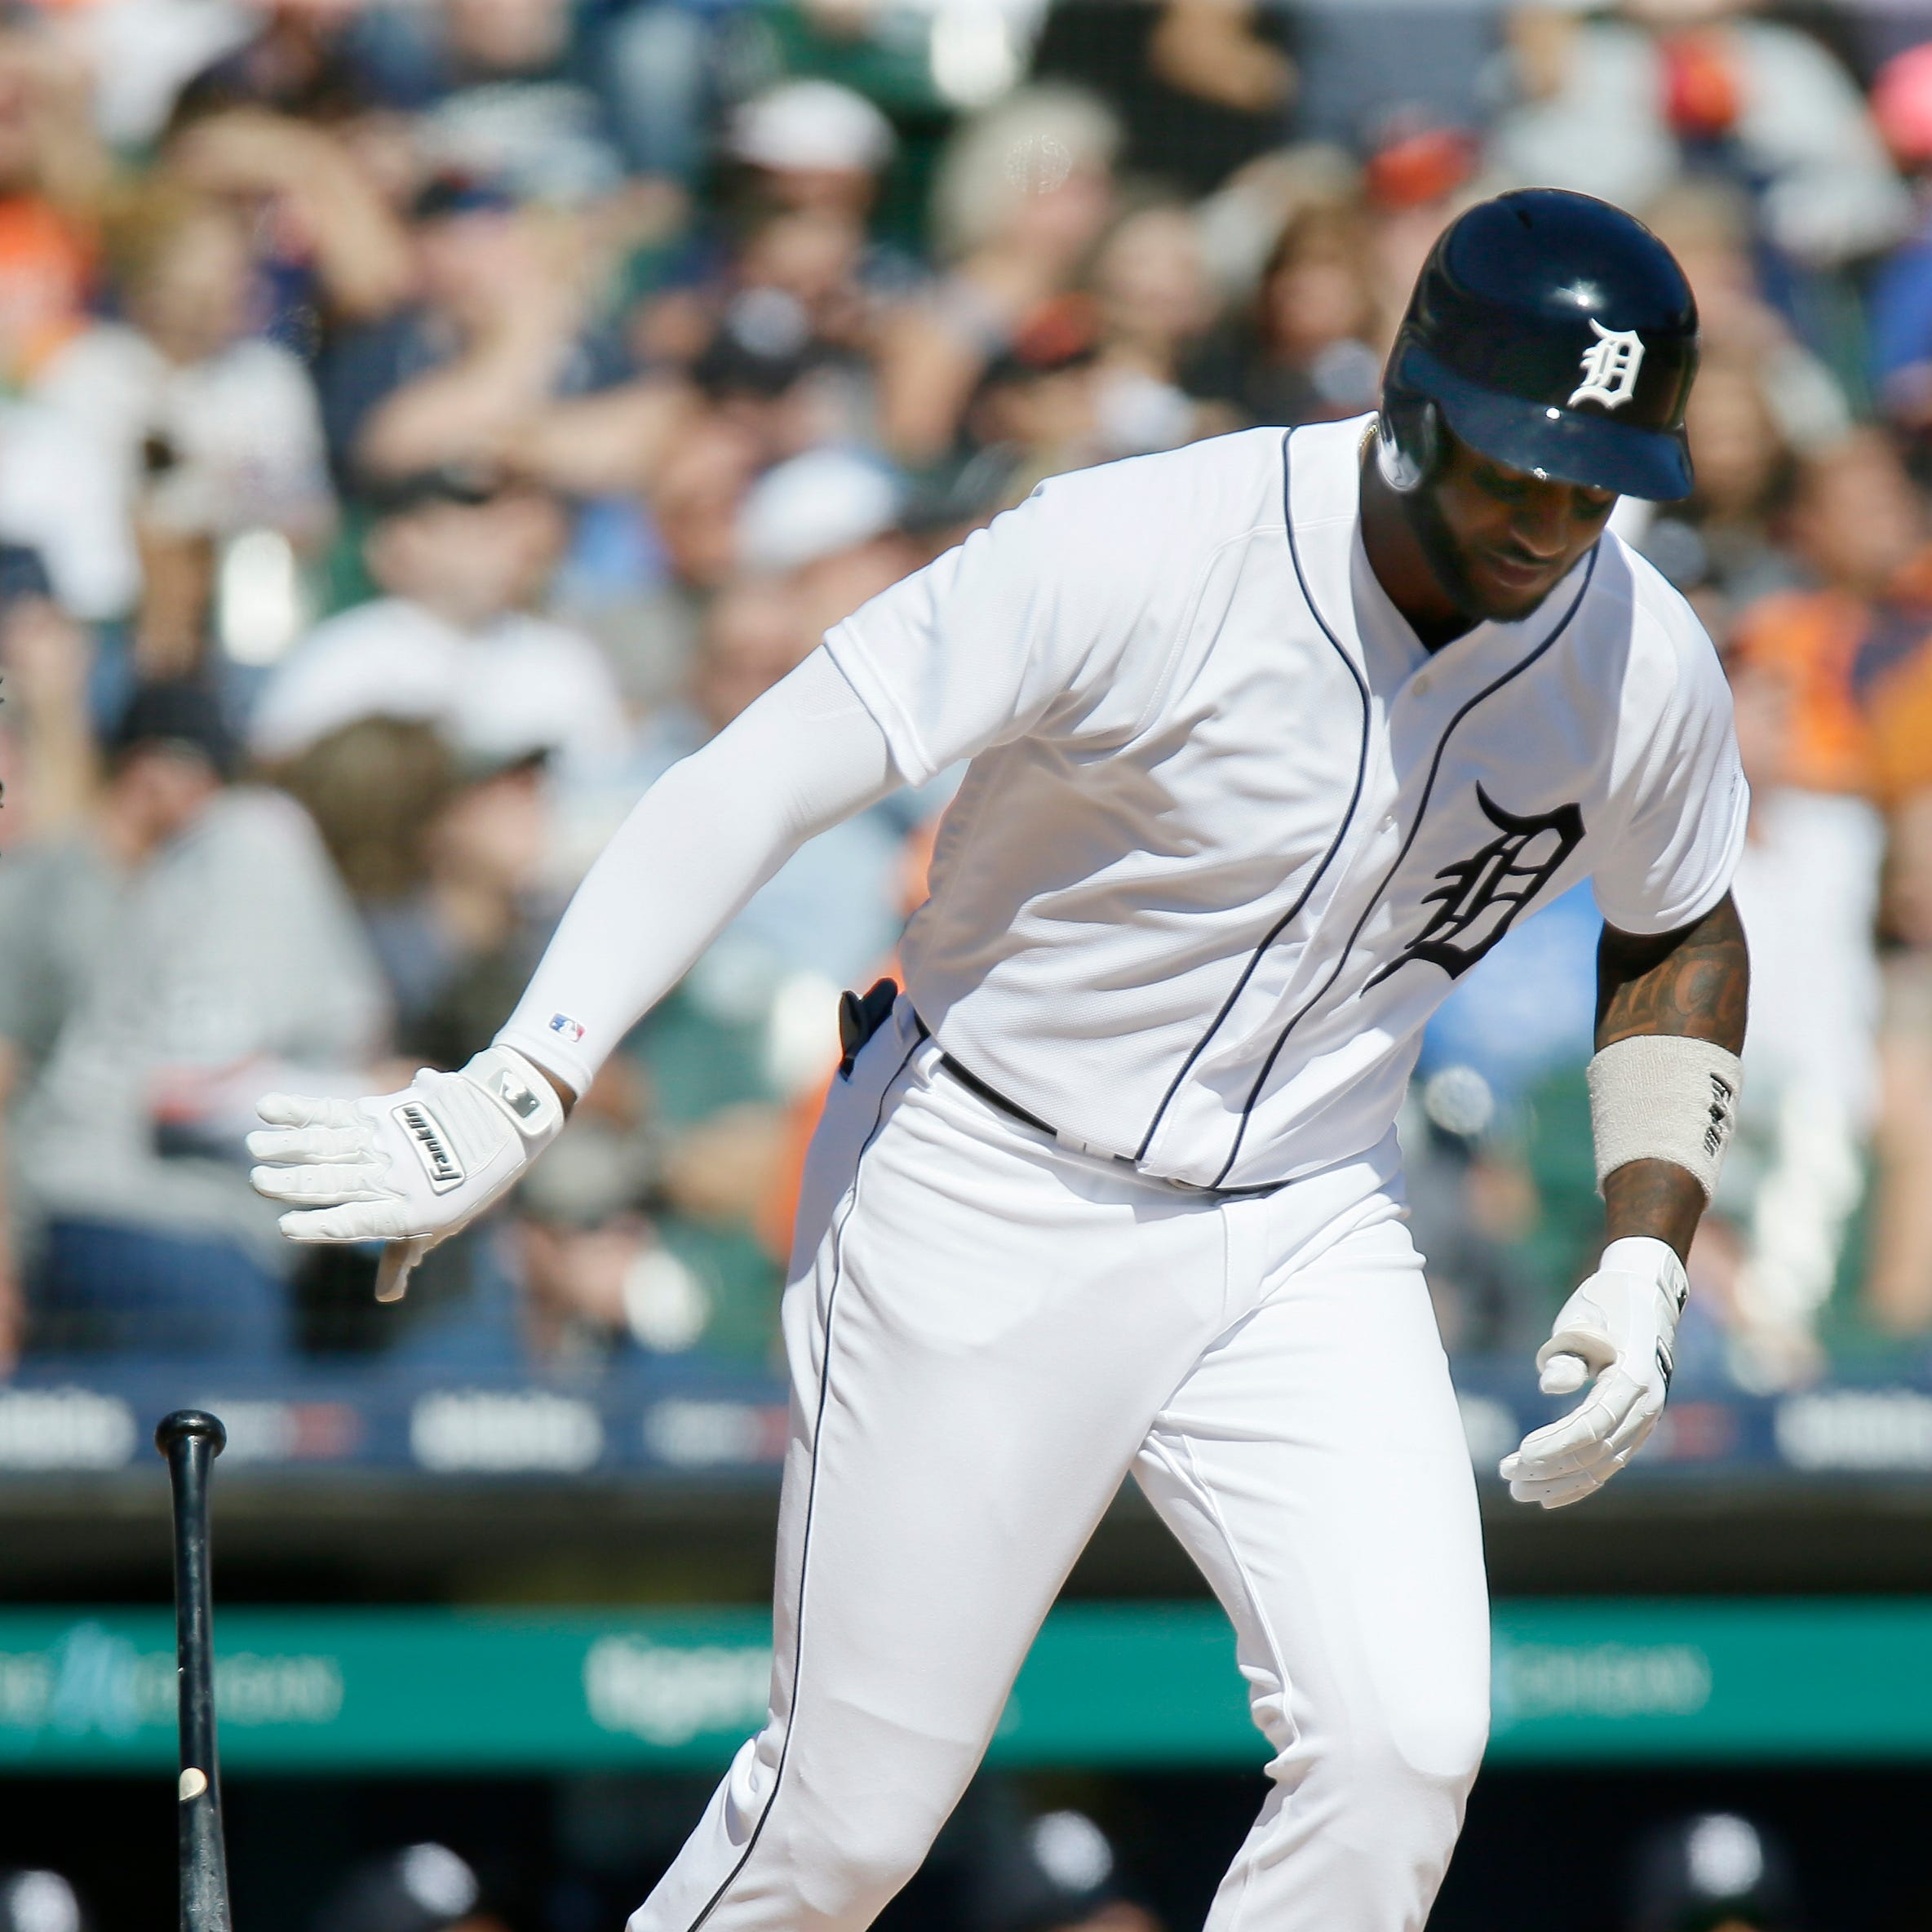 Detroit Tigers' home finale loss sums up 2018 season: Just a hit short